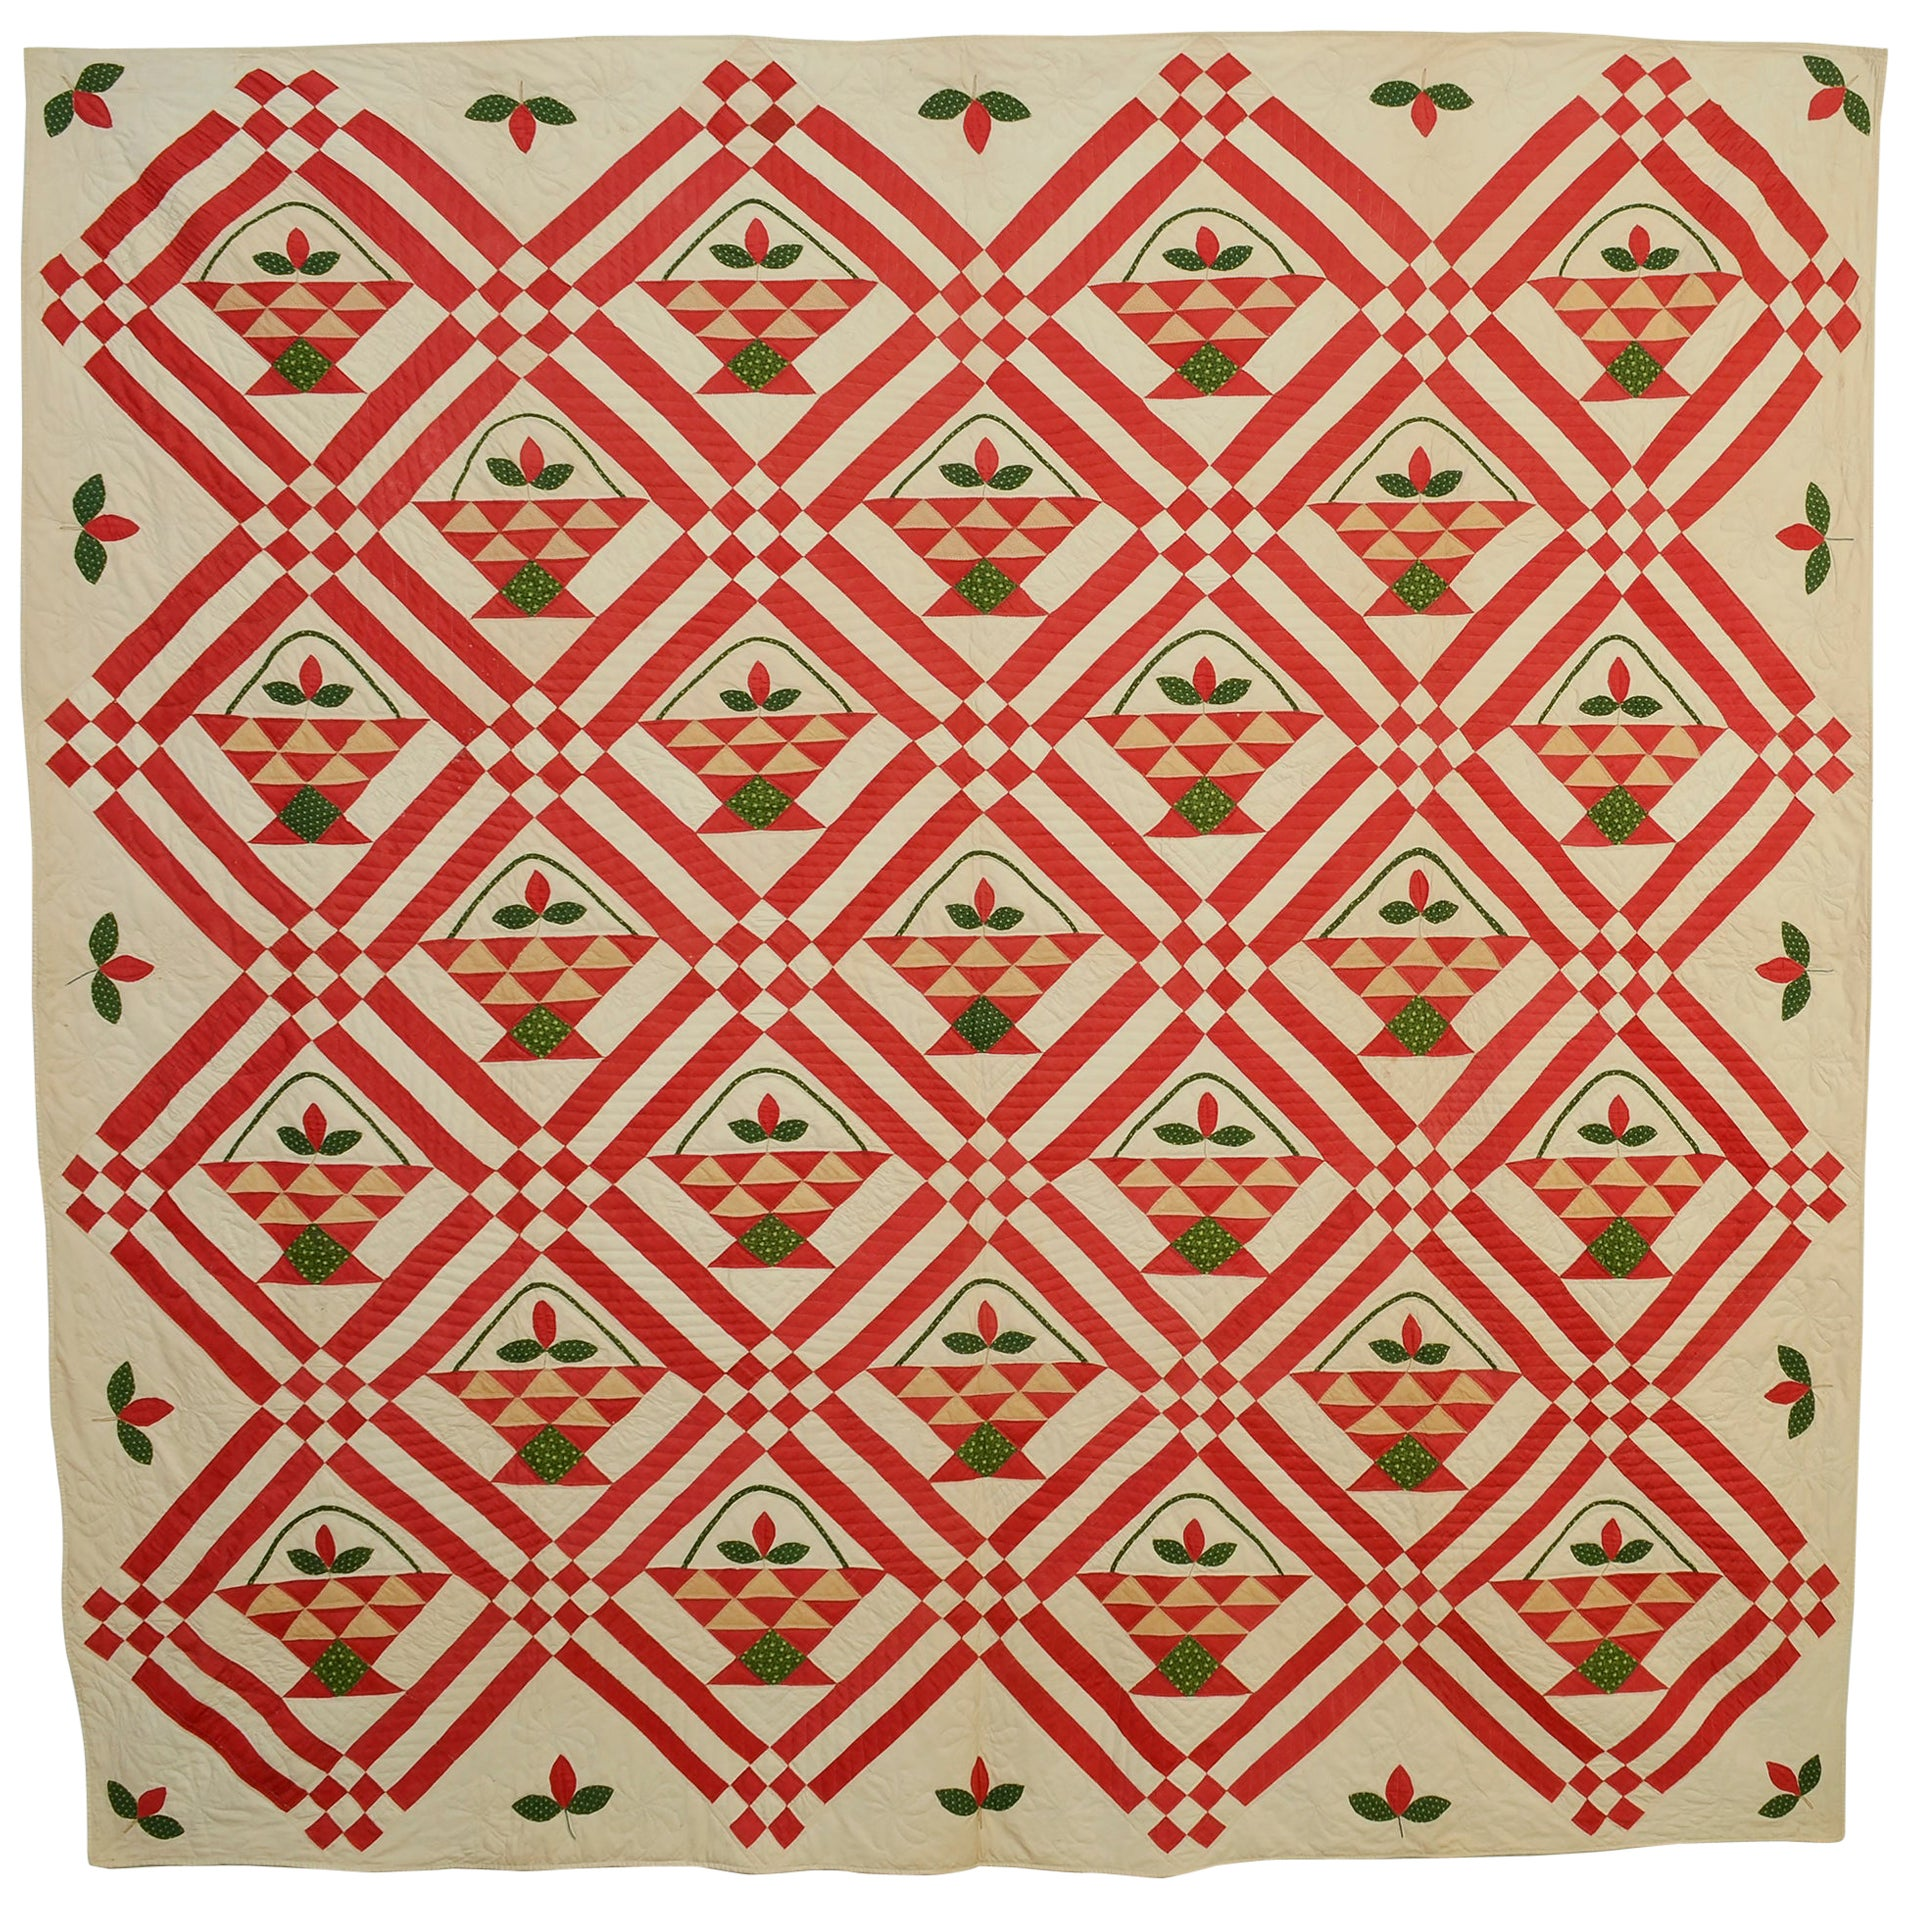 Baskets Quilt with Appliqued Flowers